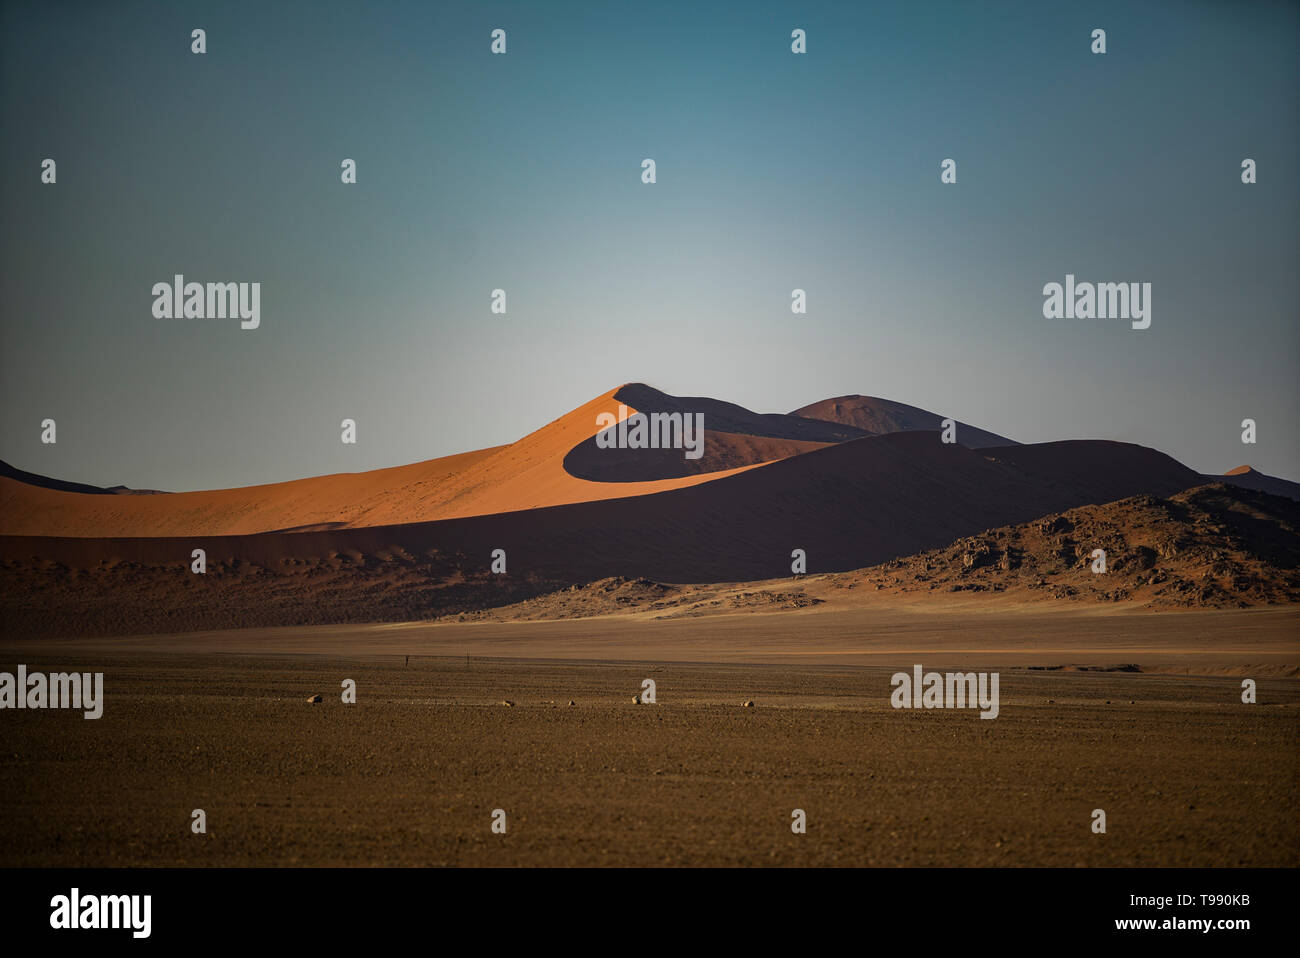 The largest dunes in the world, Sossusvlei, Namibia, Africa Stock Photo